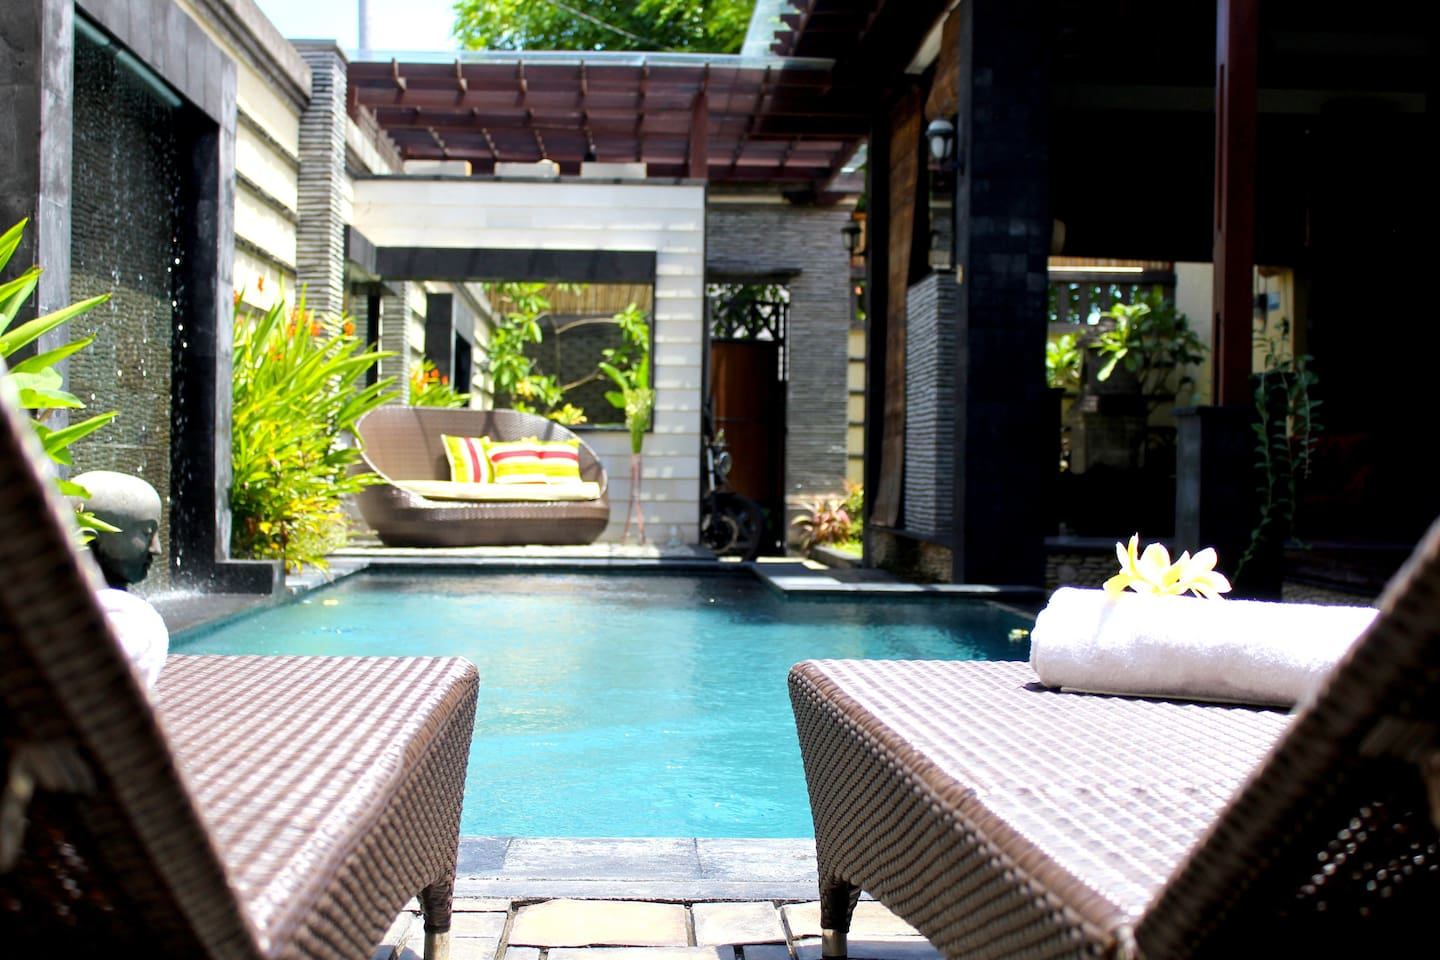 The happy place by the pool at Villa Honey